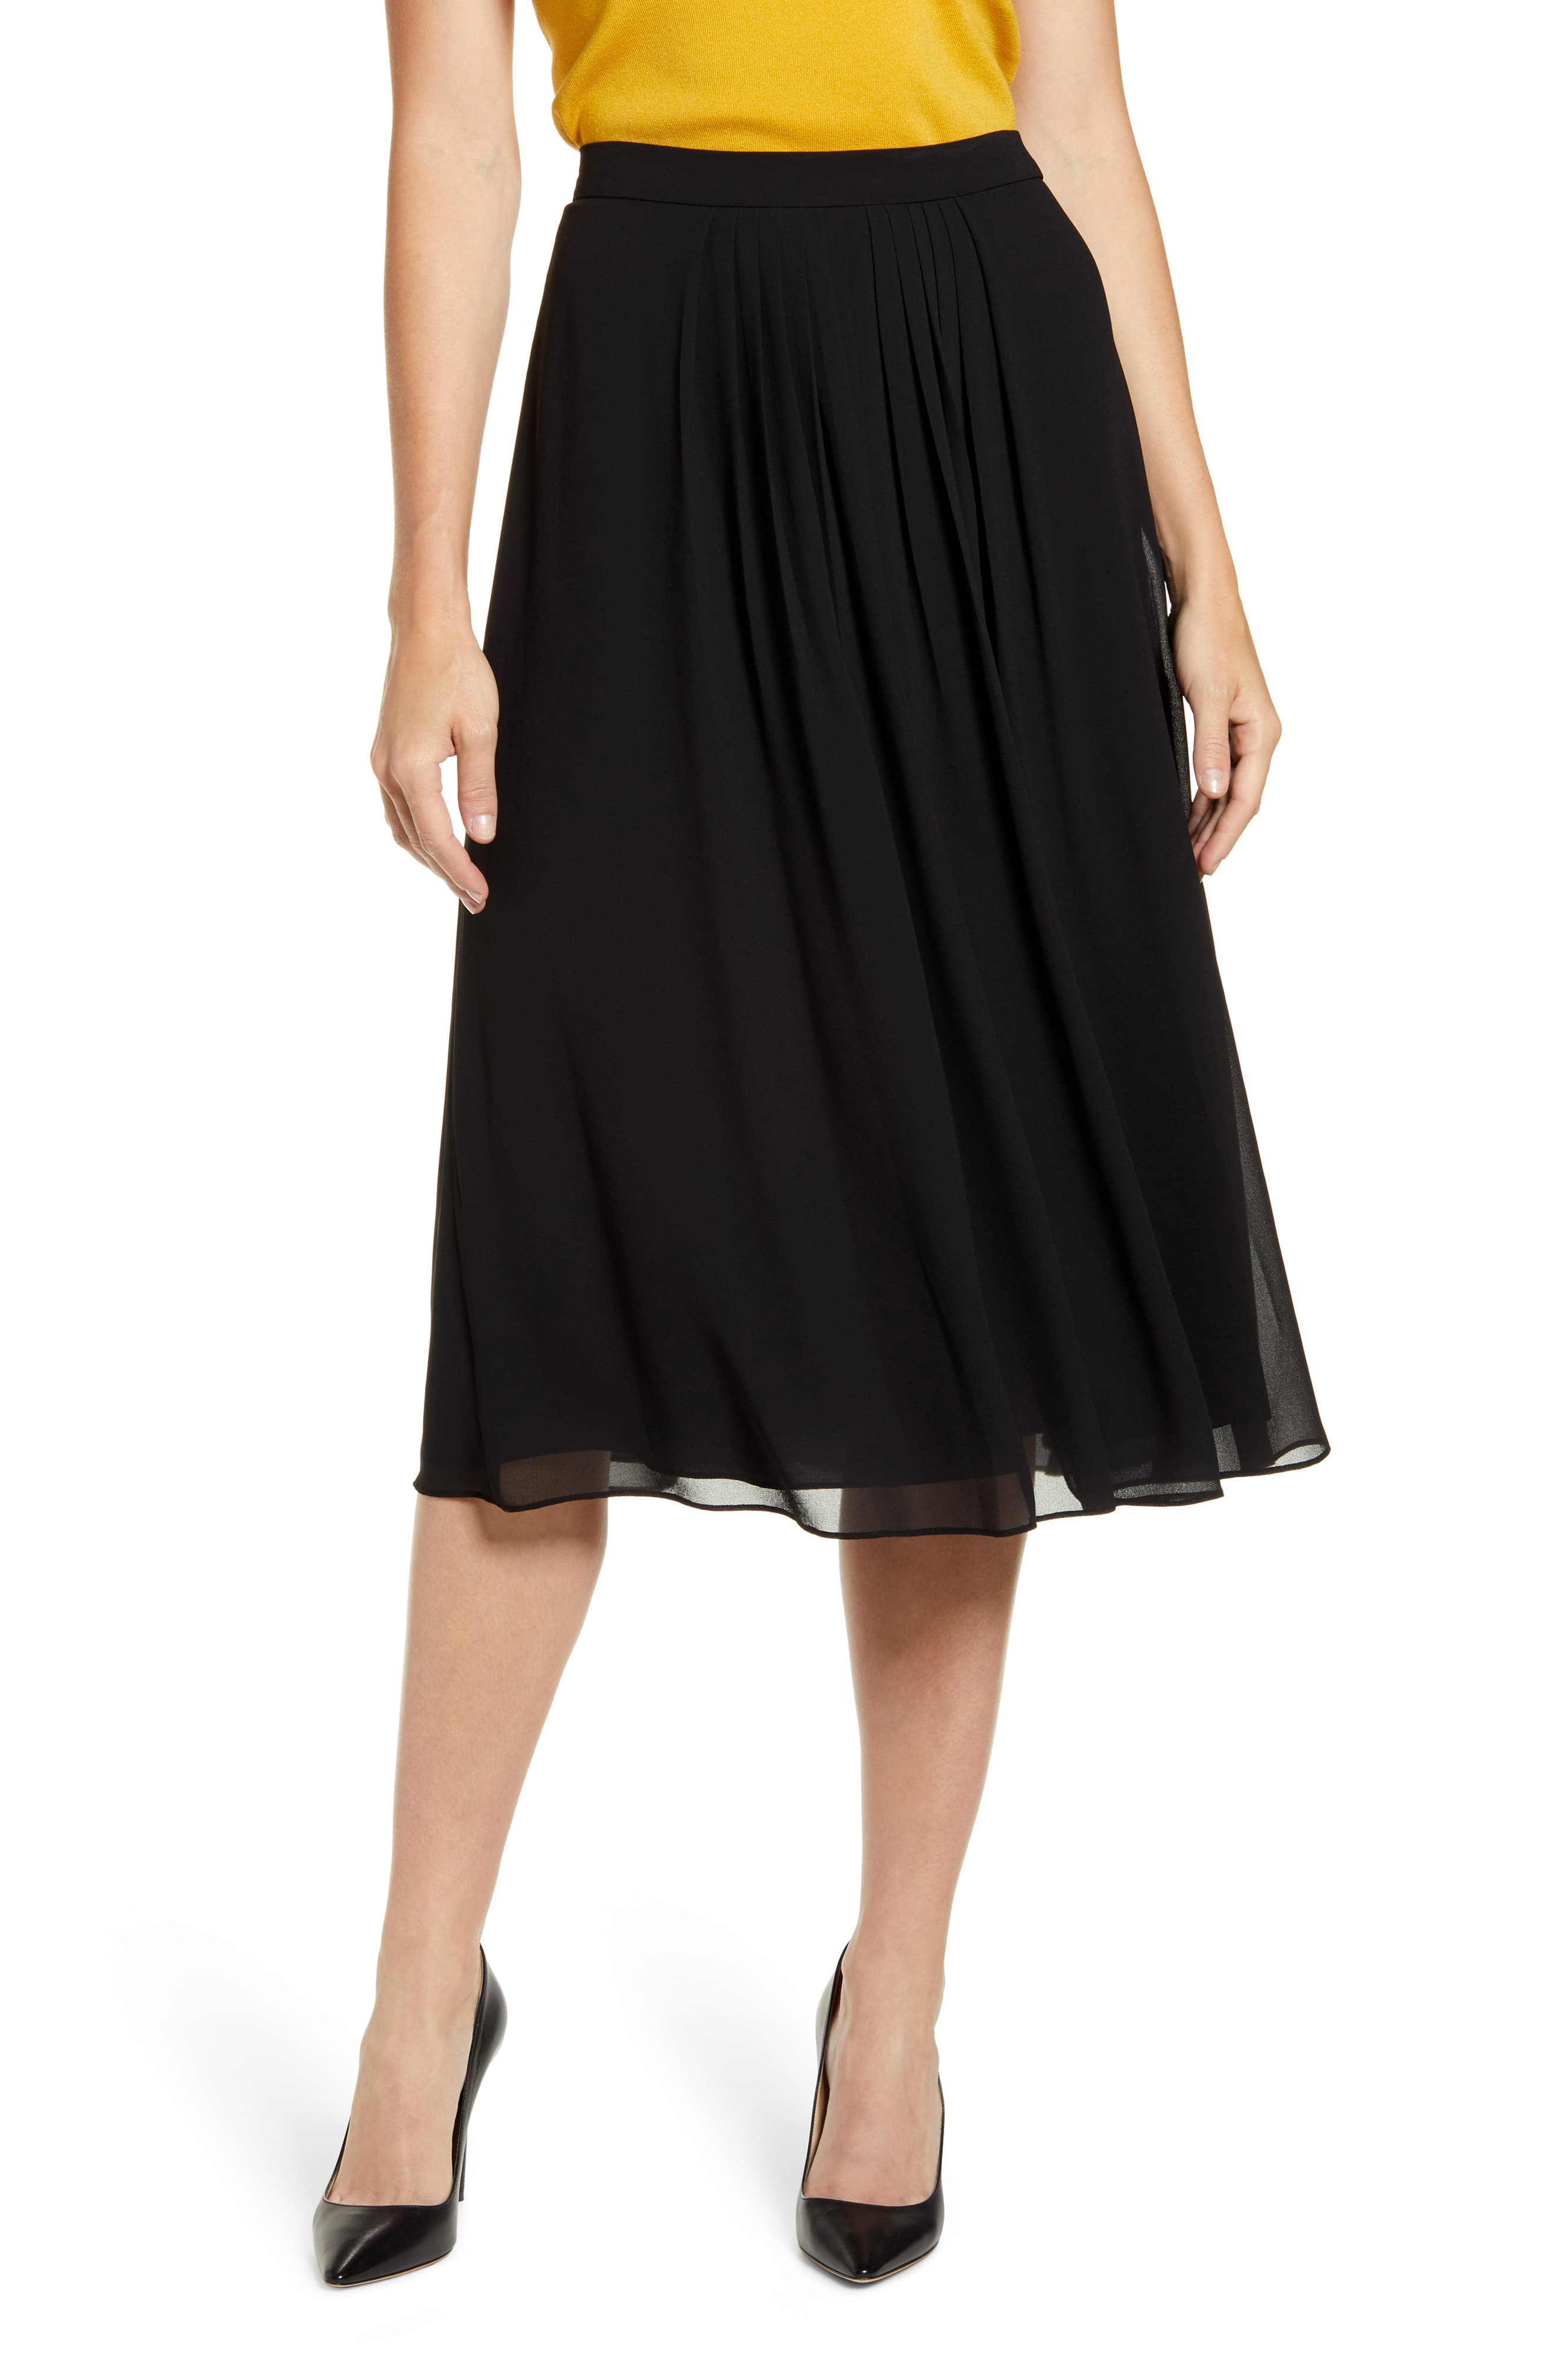 Crisp pleats at the waist create the flowing, dynamic profile of this gauzy A-line skirt. Style Name:Anne Klein Pleated A-Line Skirt. Style Number: 5881208. Available in stores.